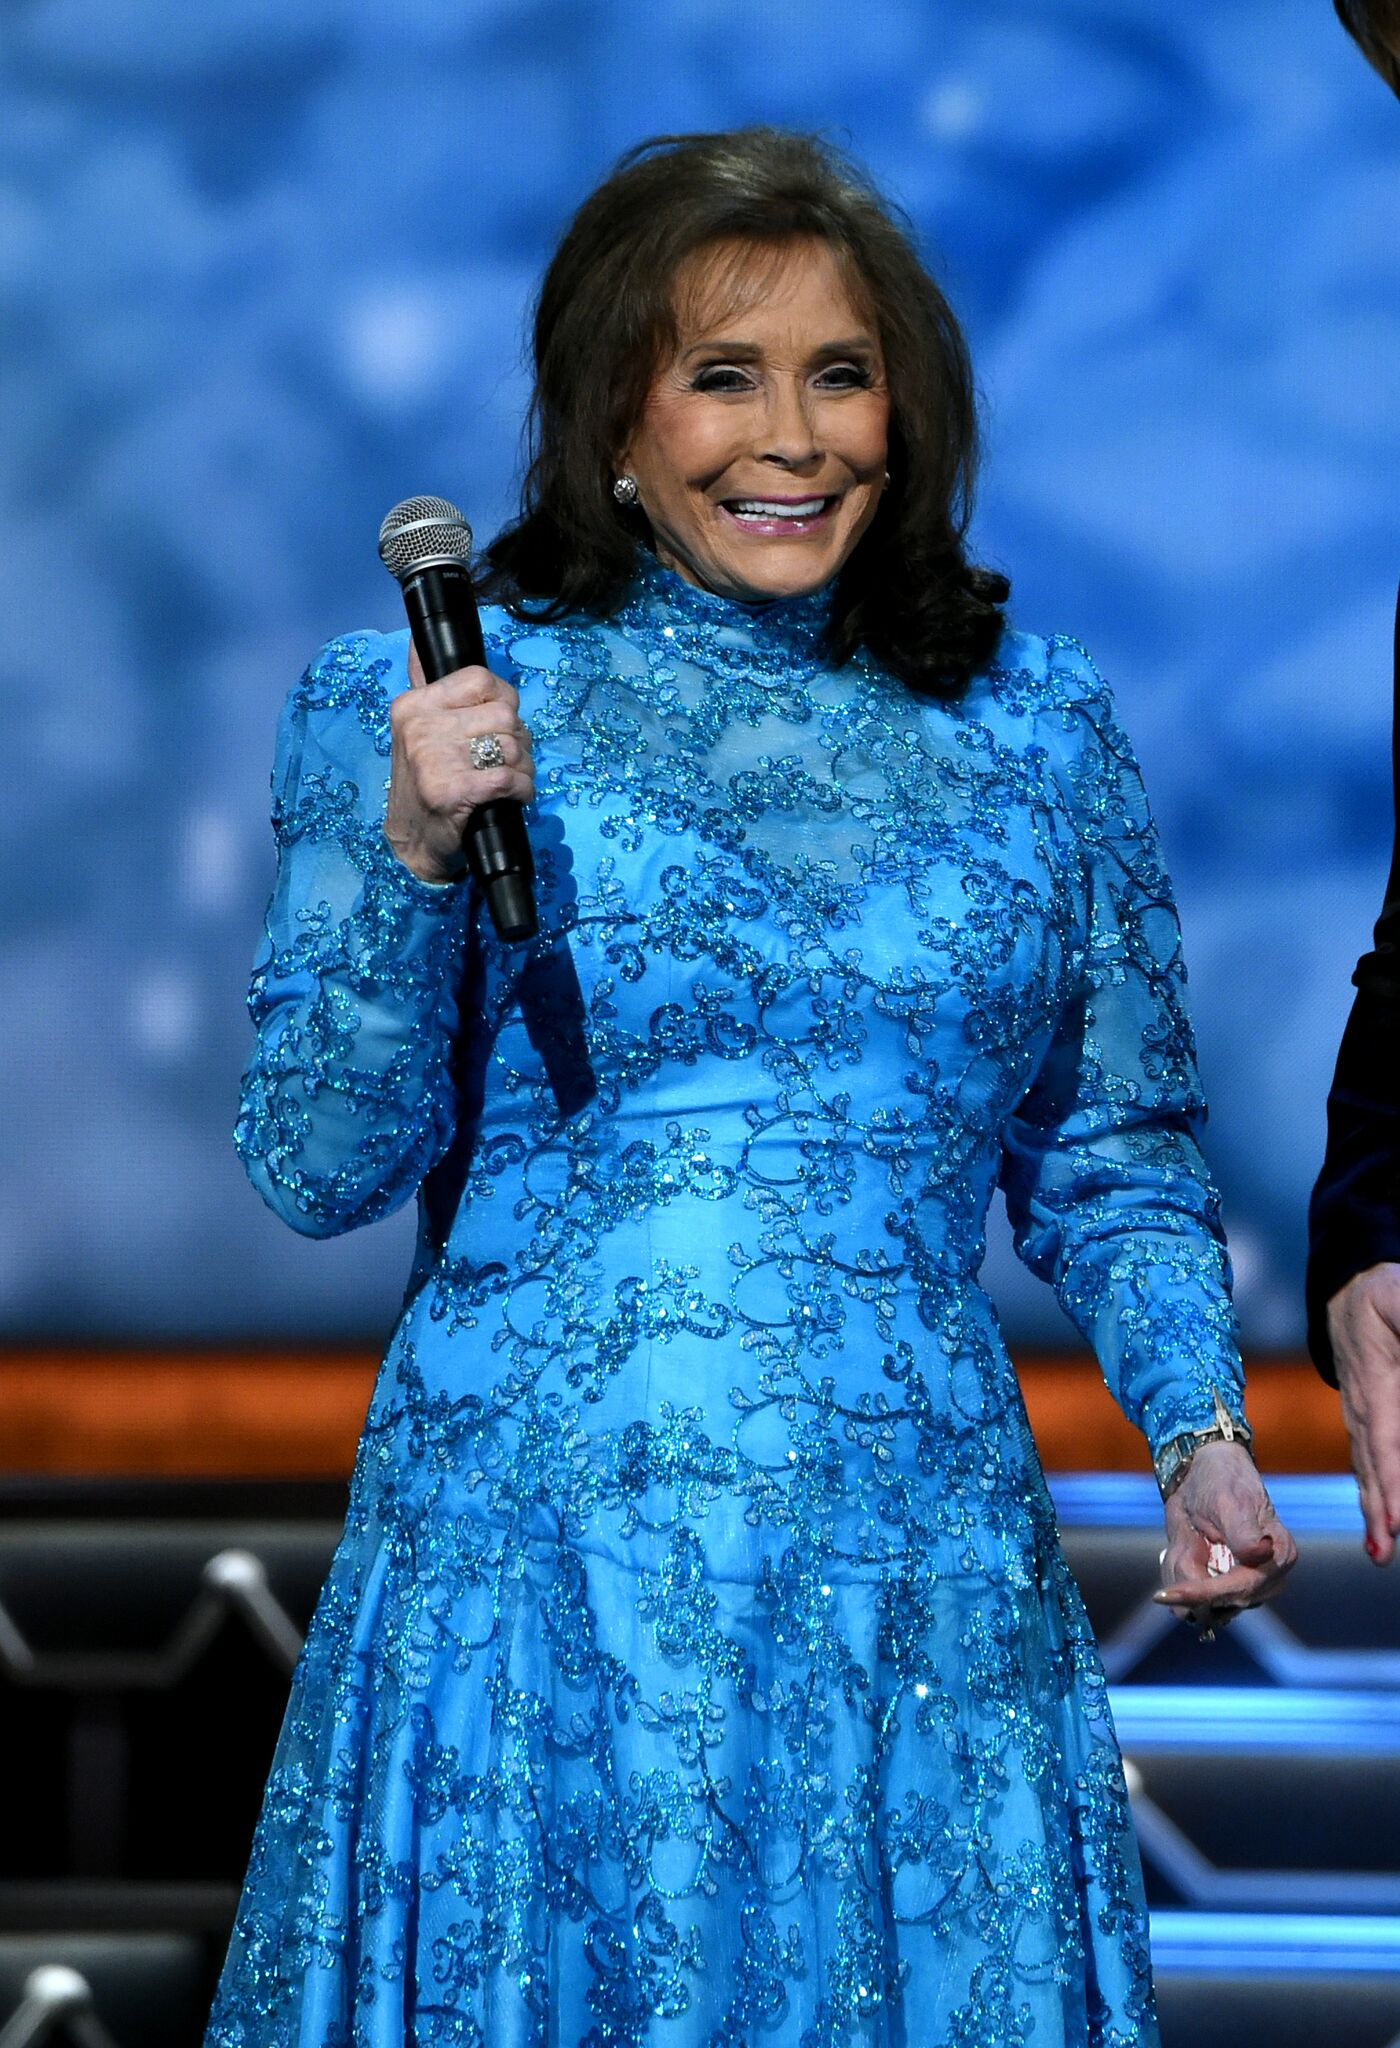 Singer-songwriter Loretta Lynn performs on stage during the CMA 2016 Country Christmas | Getty Images